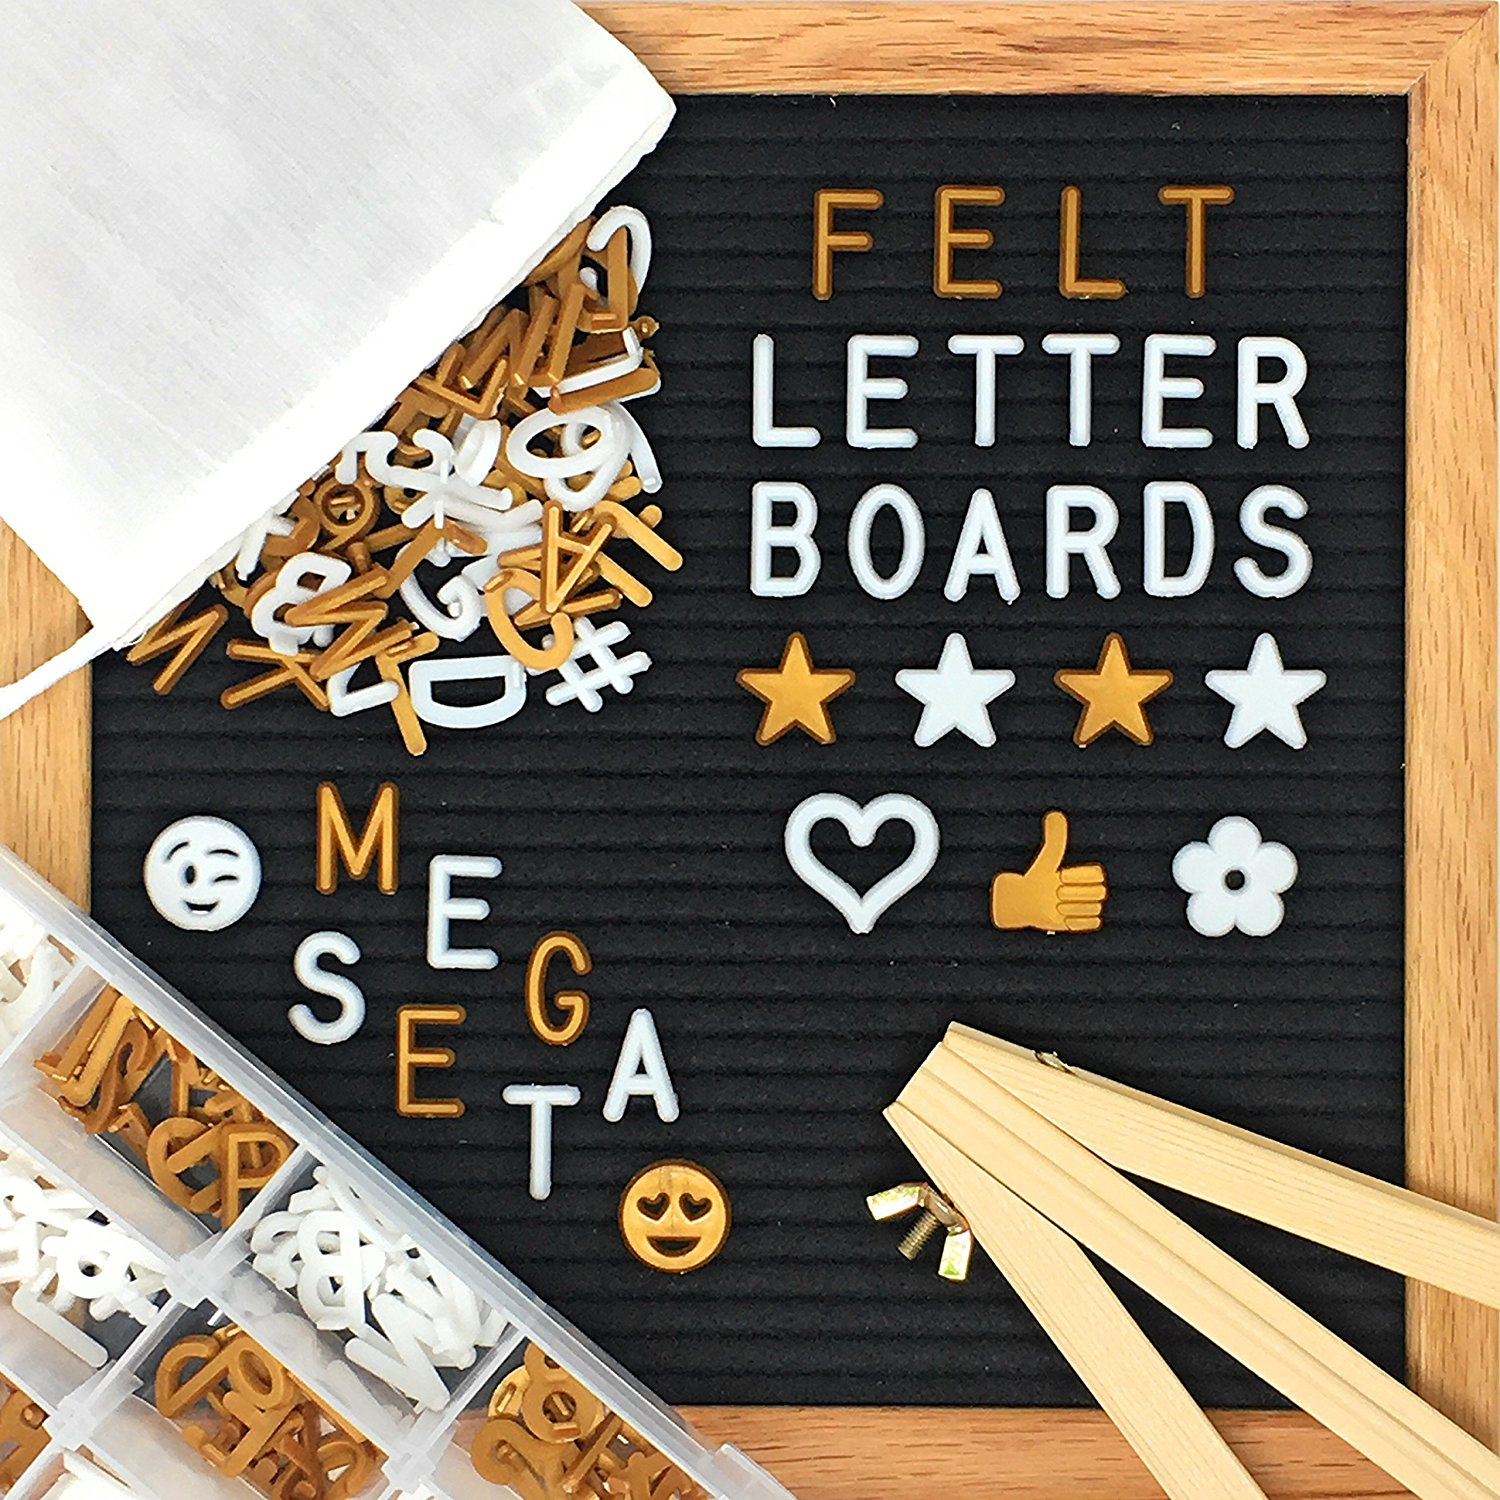 "Changeable Felt Letter Board MEGA SET with 700+ White and Gold Letters + Letter Organizer + Letter Pouch + Wooden Easel (GIFT SET, 10"" x 10"")"